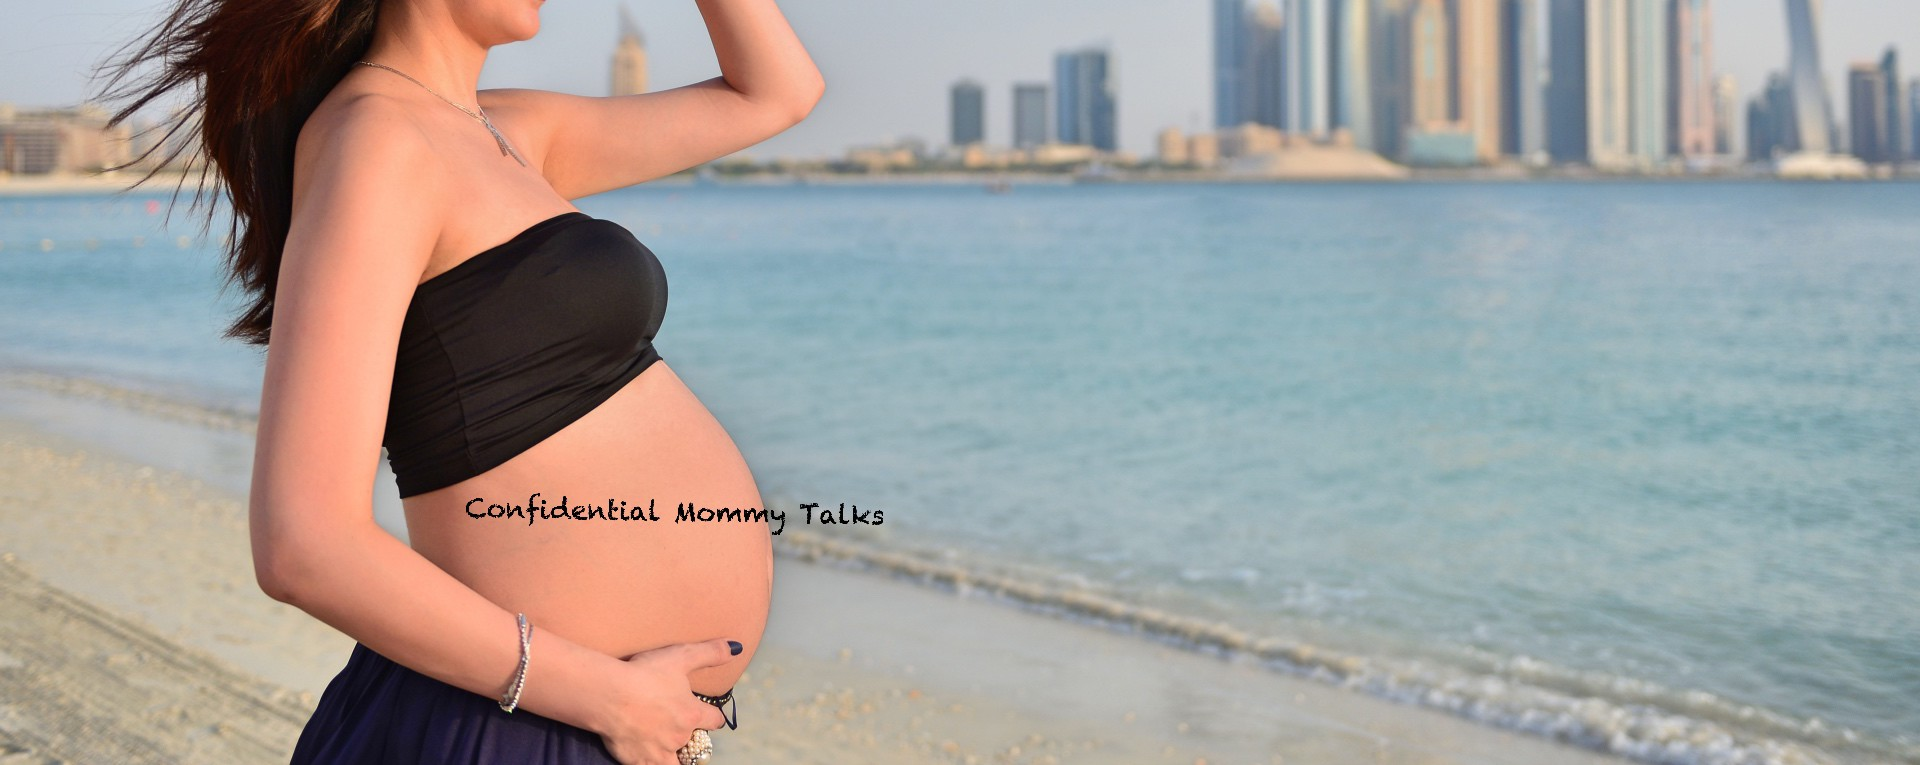 Mom, Pregnant, Happy, Tired, Motherhood, Challenges